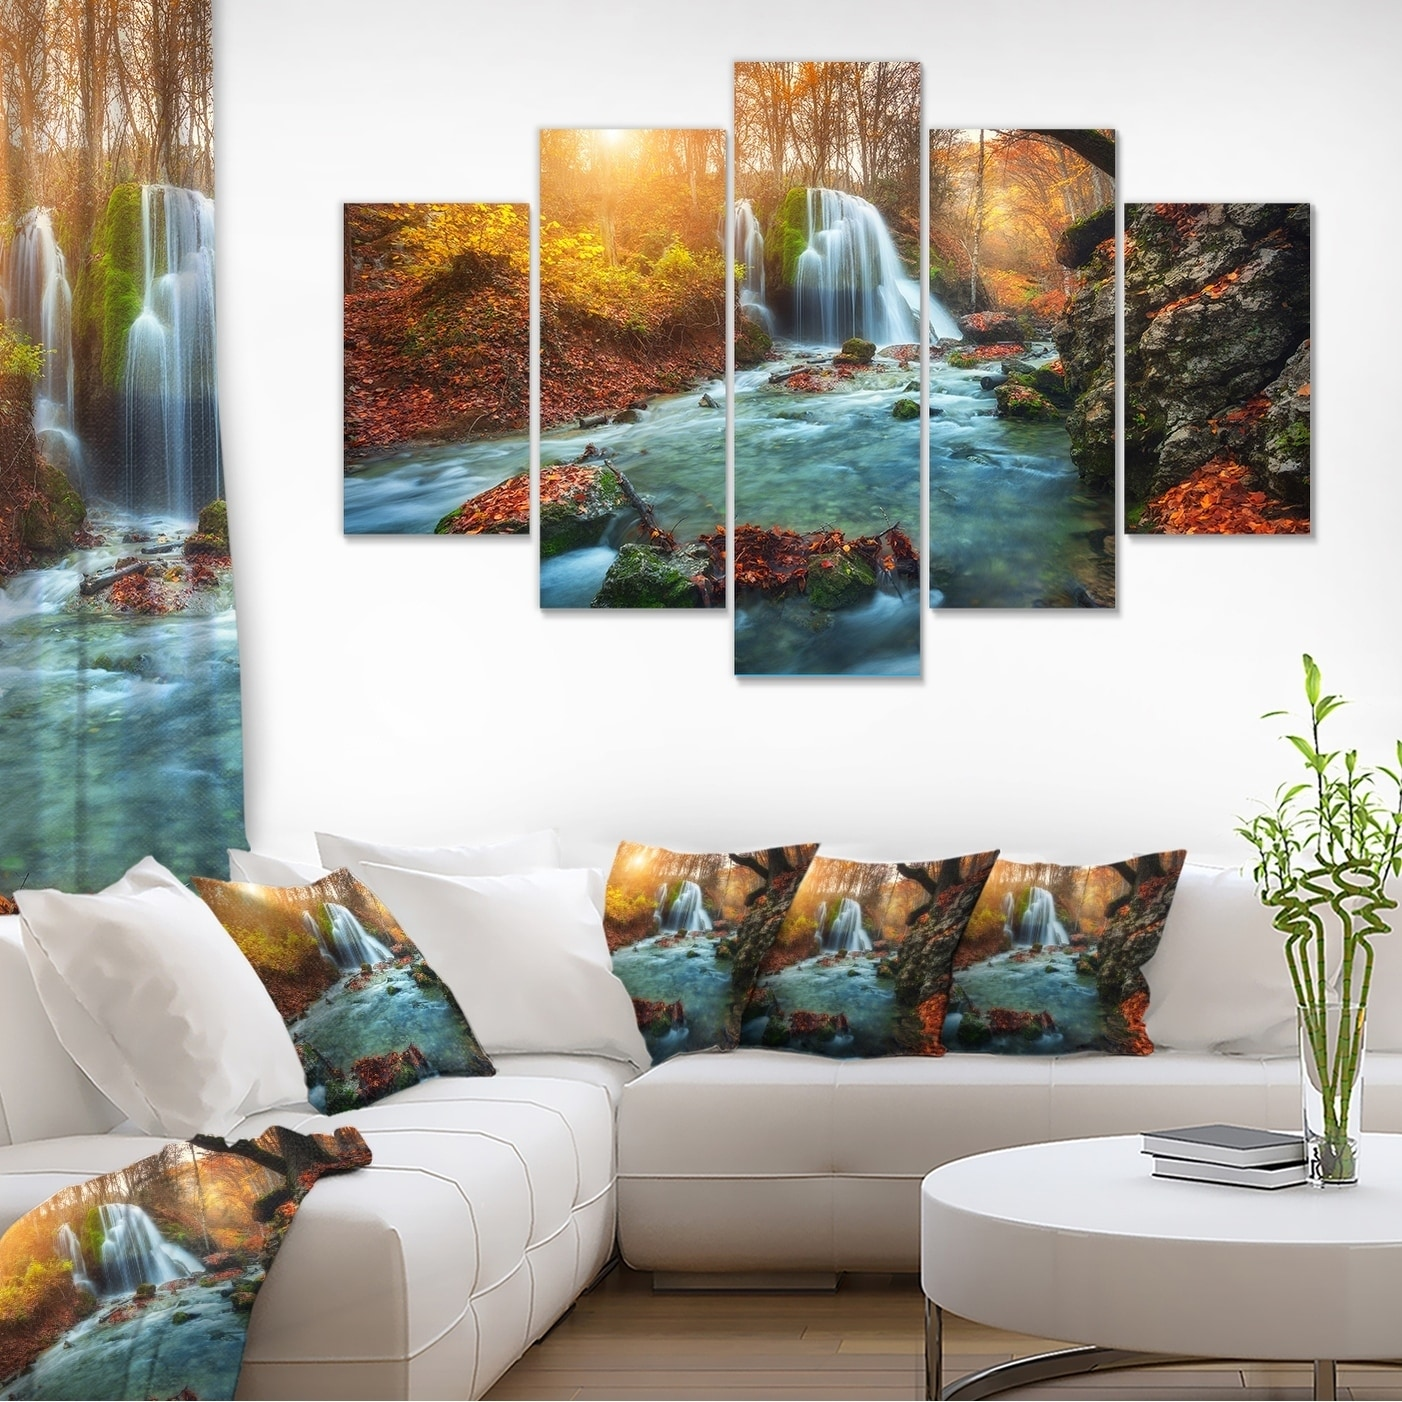 Fast flowing fall river in forest landscape photography wall art